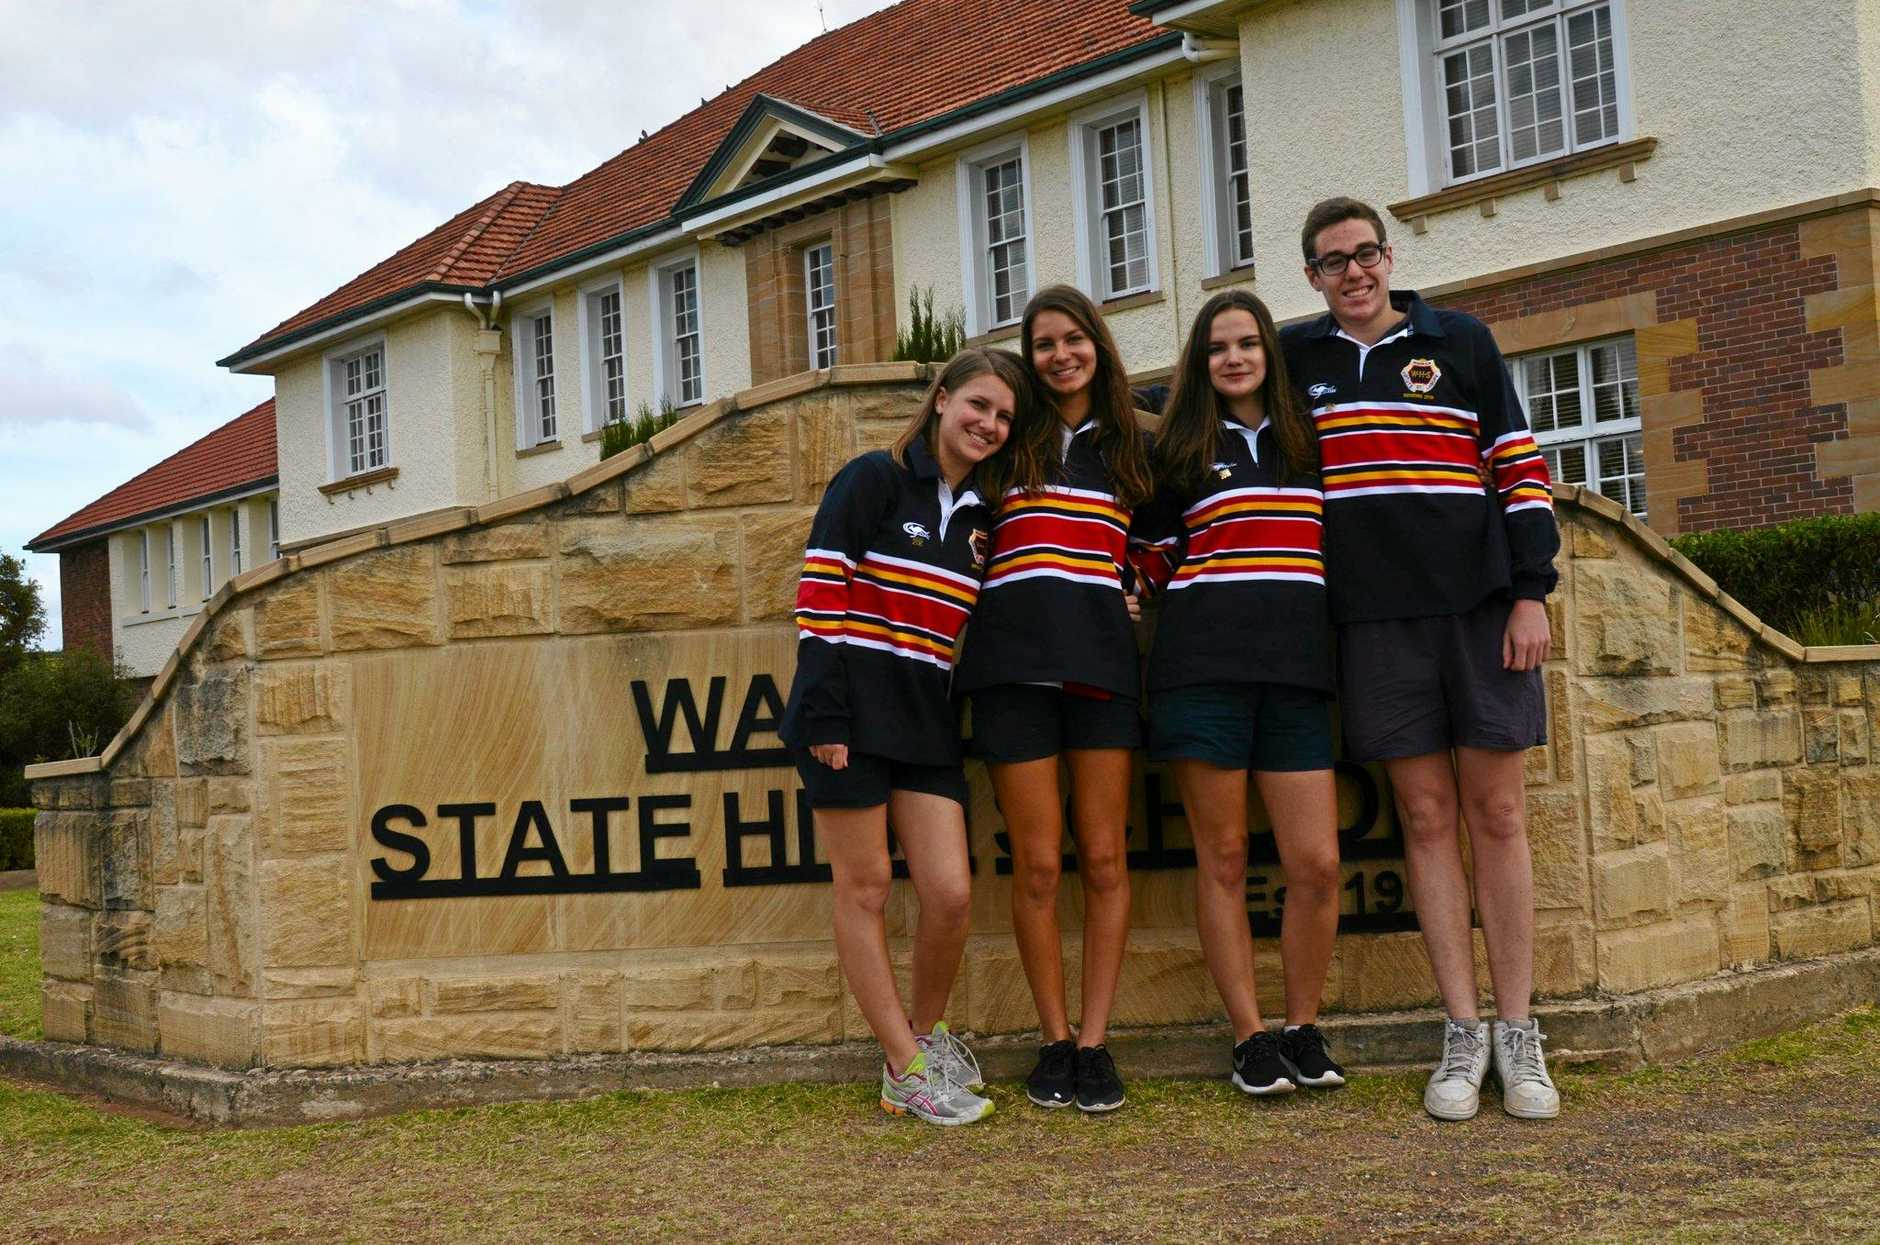 Students at Warwick State High School